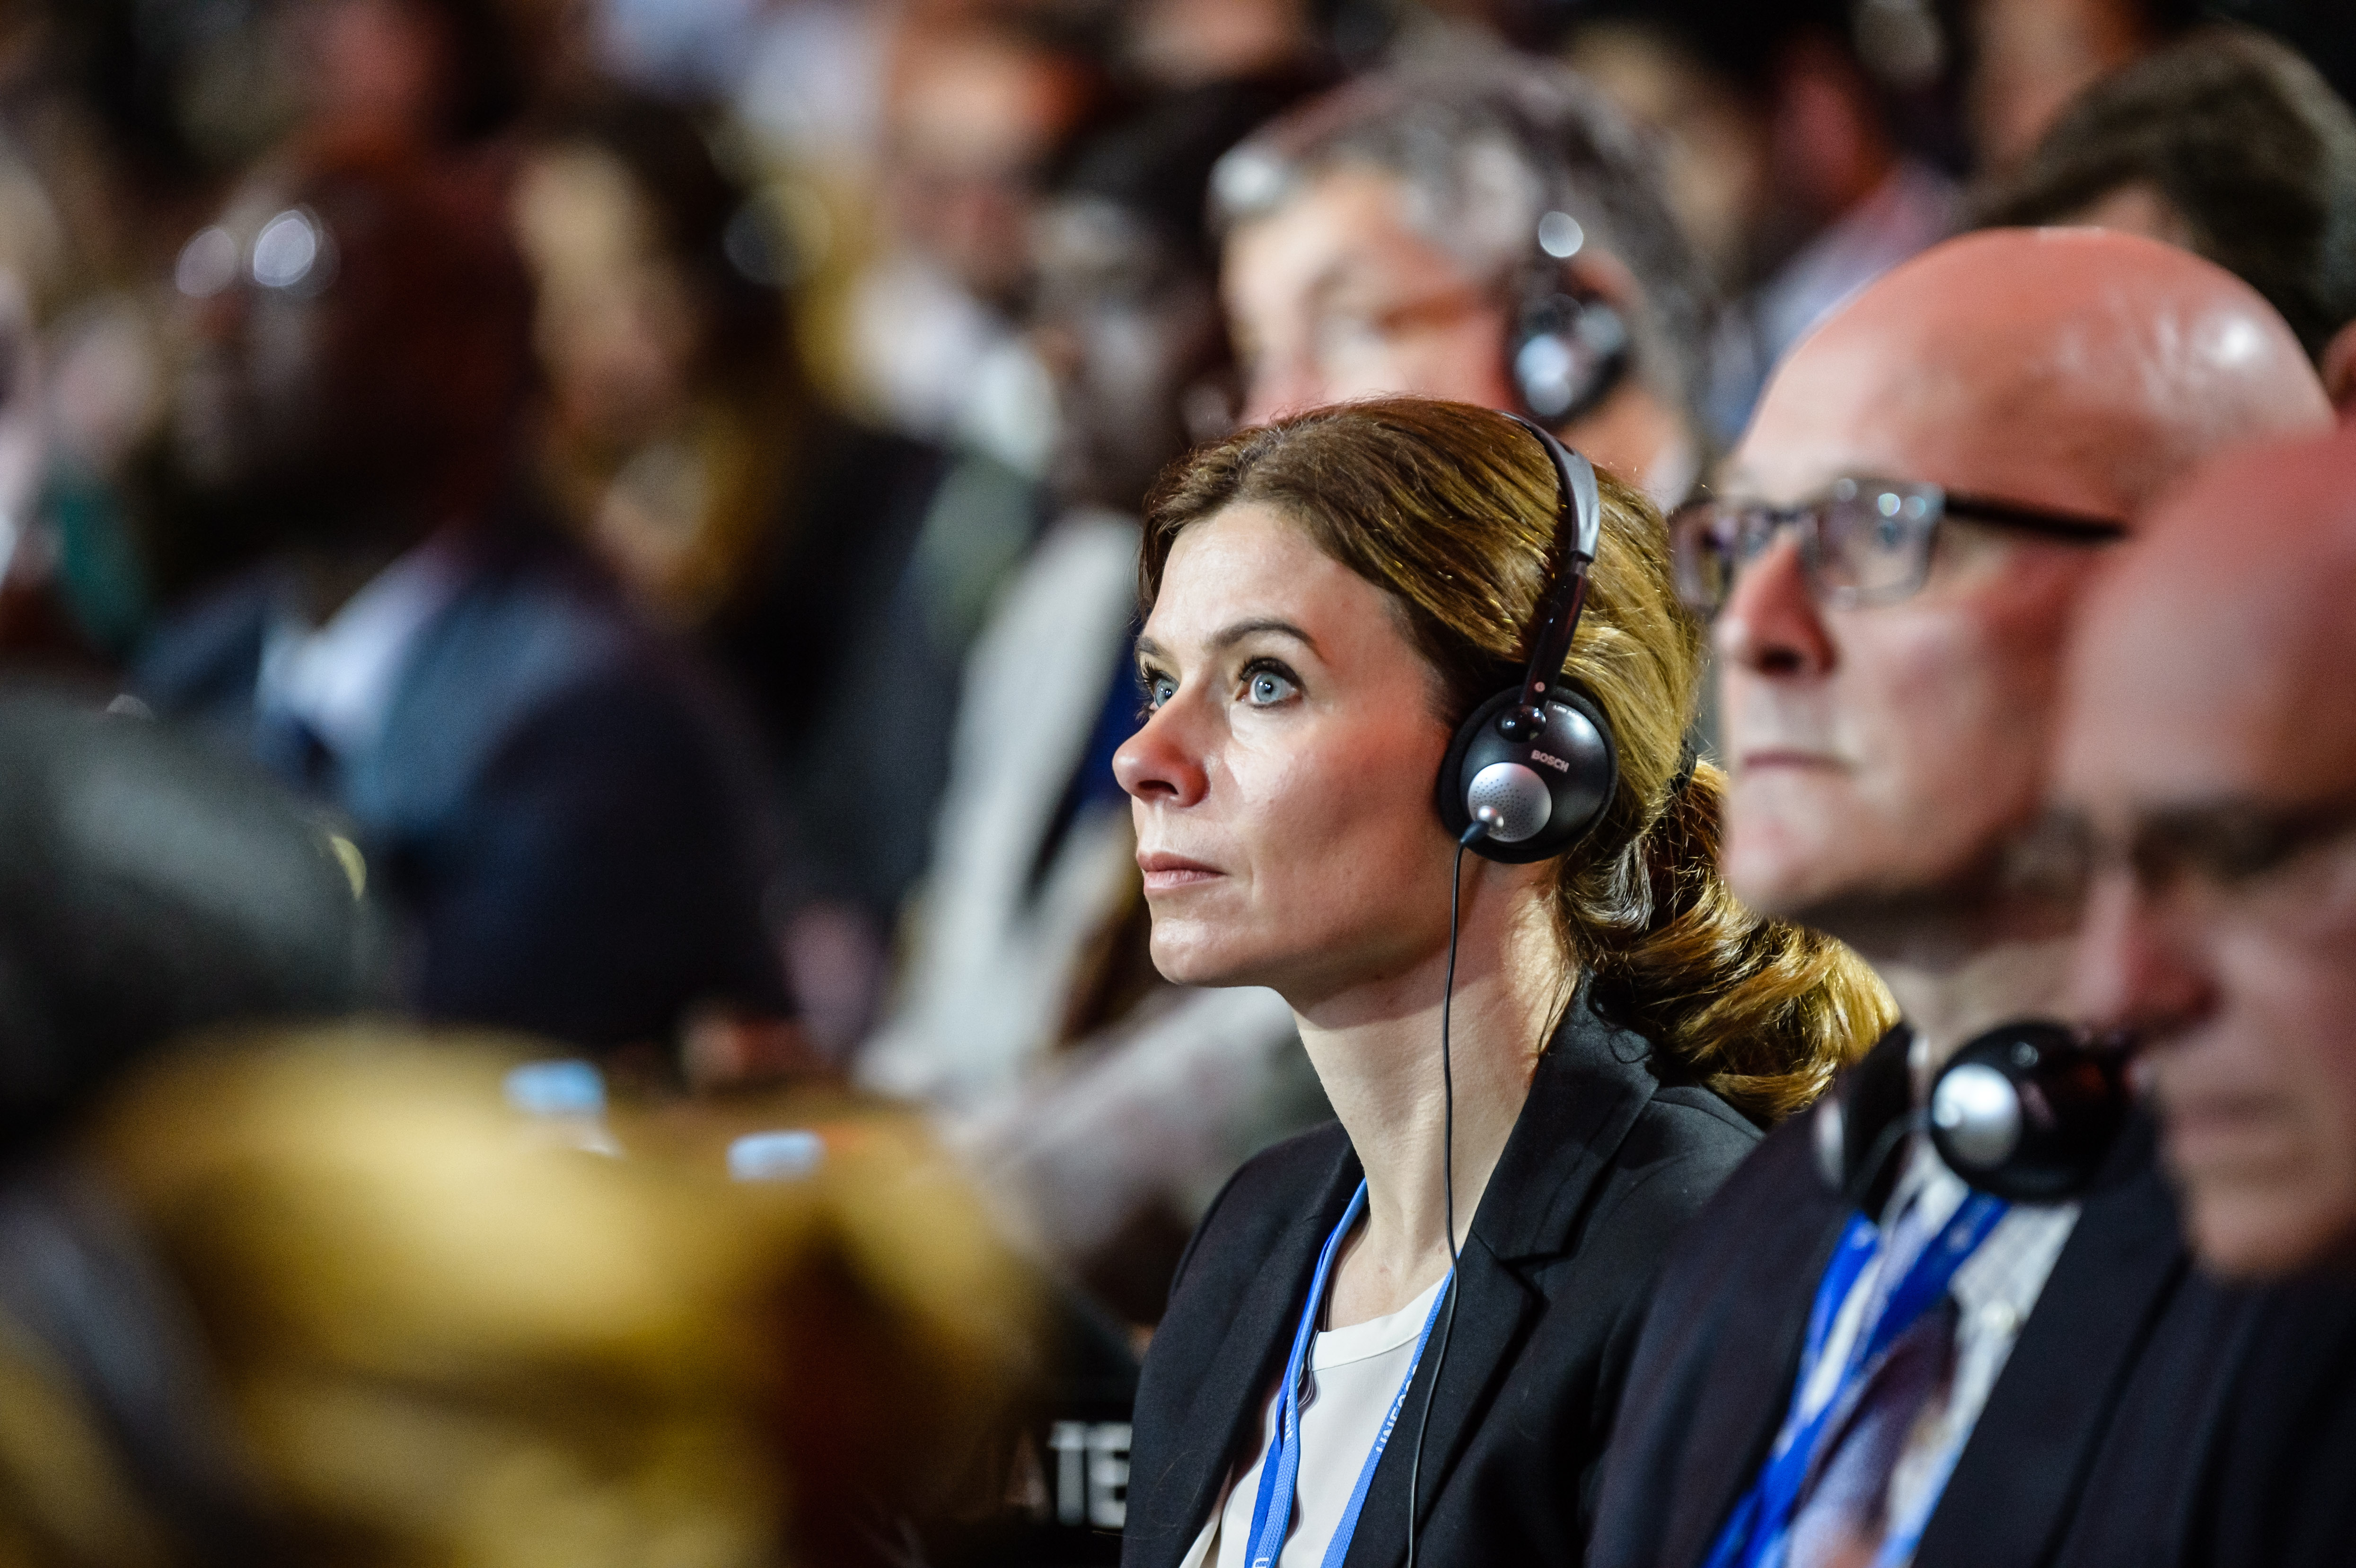 Members of the states delegations listen to the speech of Laurent Fabius during the plenary session where the final agreement of the COP21 in Paris on Dec. 12, 2015.